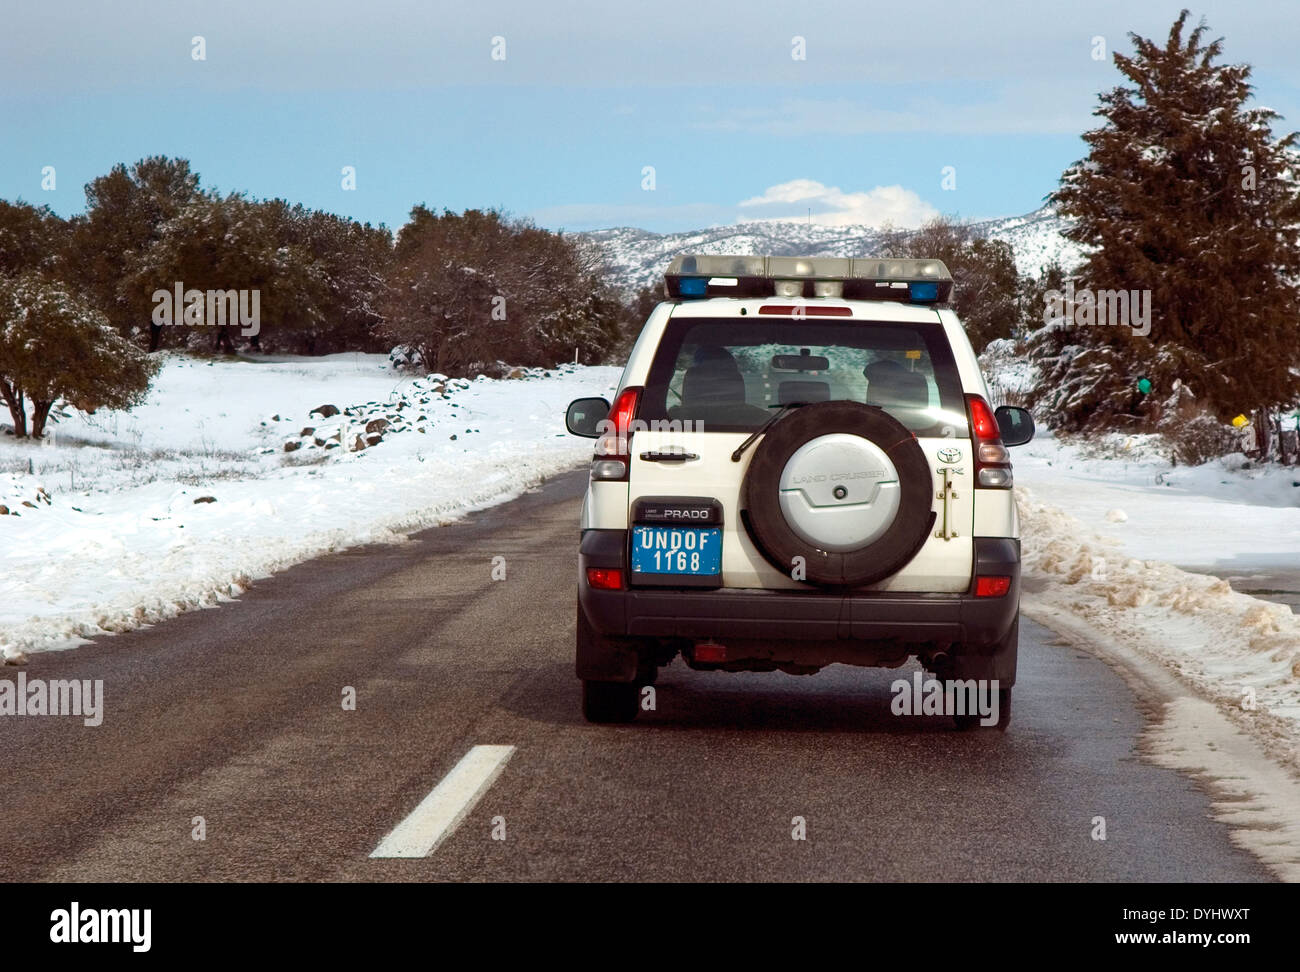 UN Vehicle, Peace keeping forces, Golan heights, Israel - Stock Image